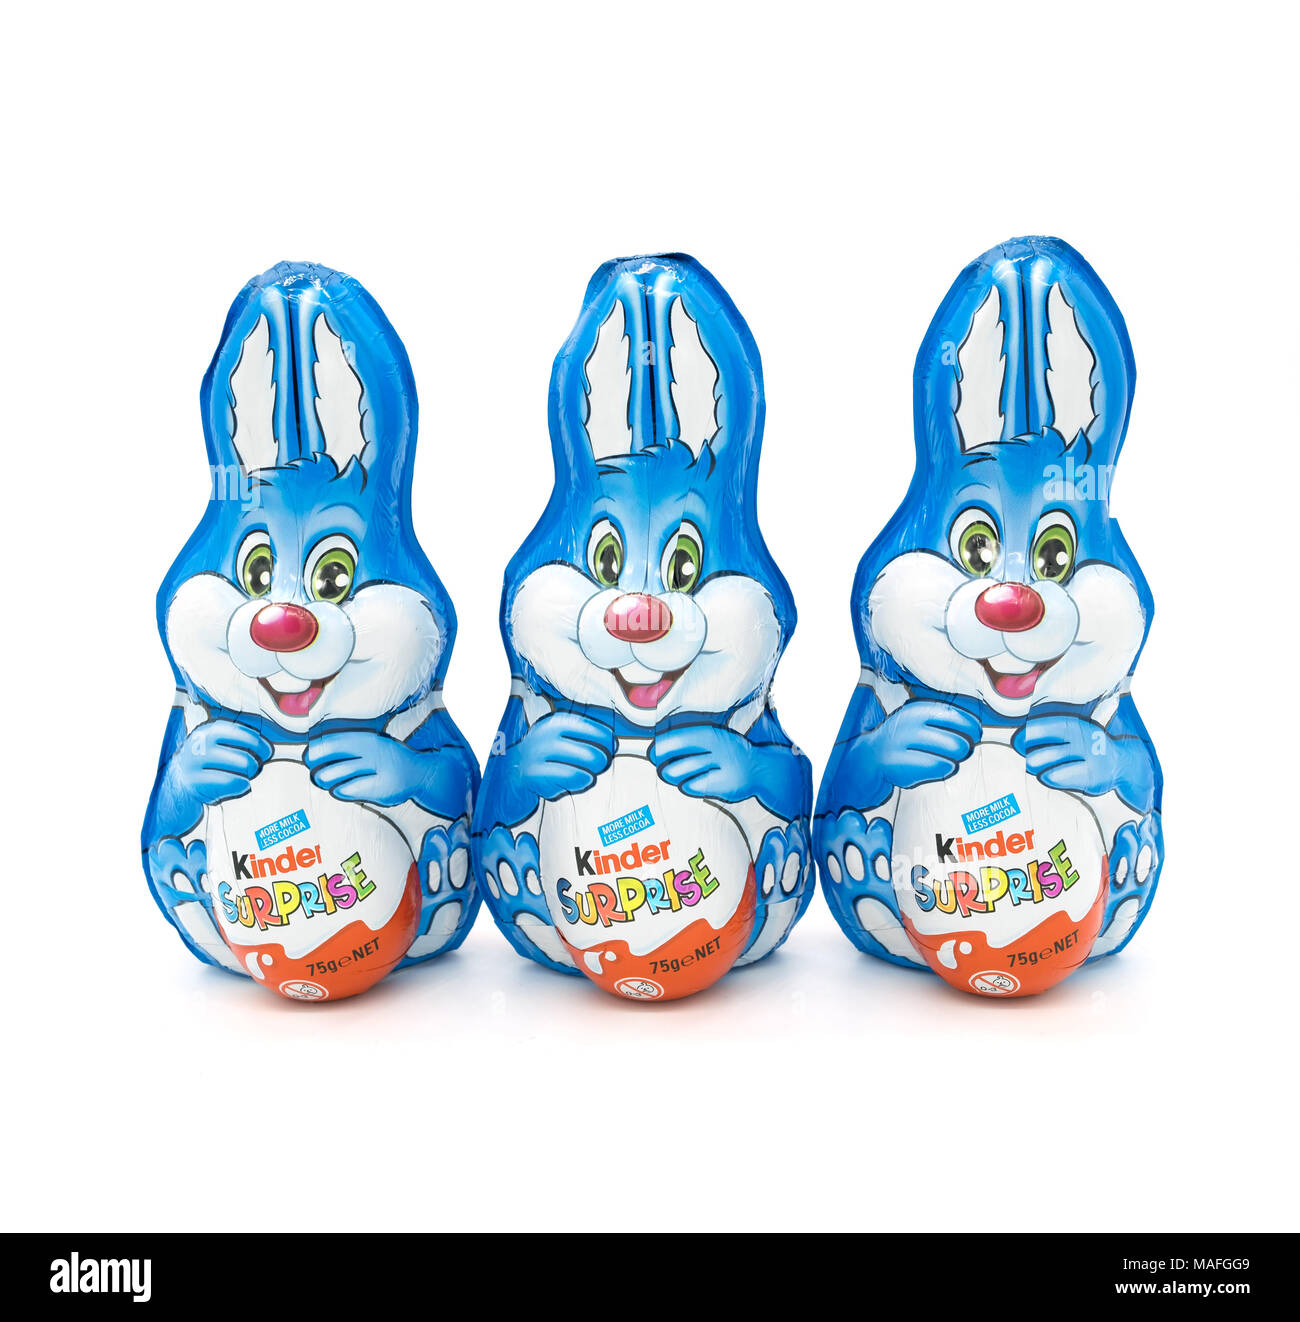 Largs, Scotland, UK - March 31, 2018: Foil Wrapped Kinder Egg Rabbits. Recent reportage about wastfull packaging in relation to non recyclable plastic - Stock Image